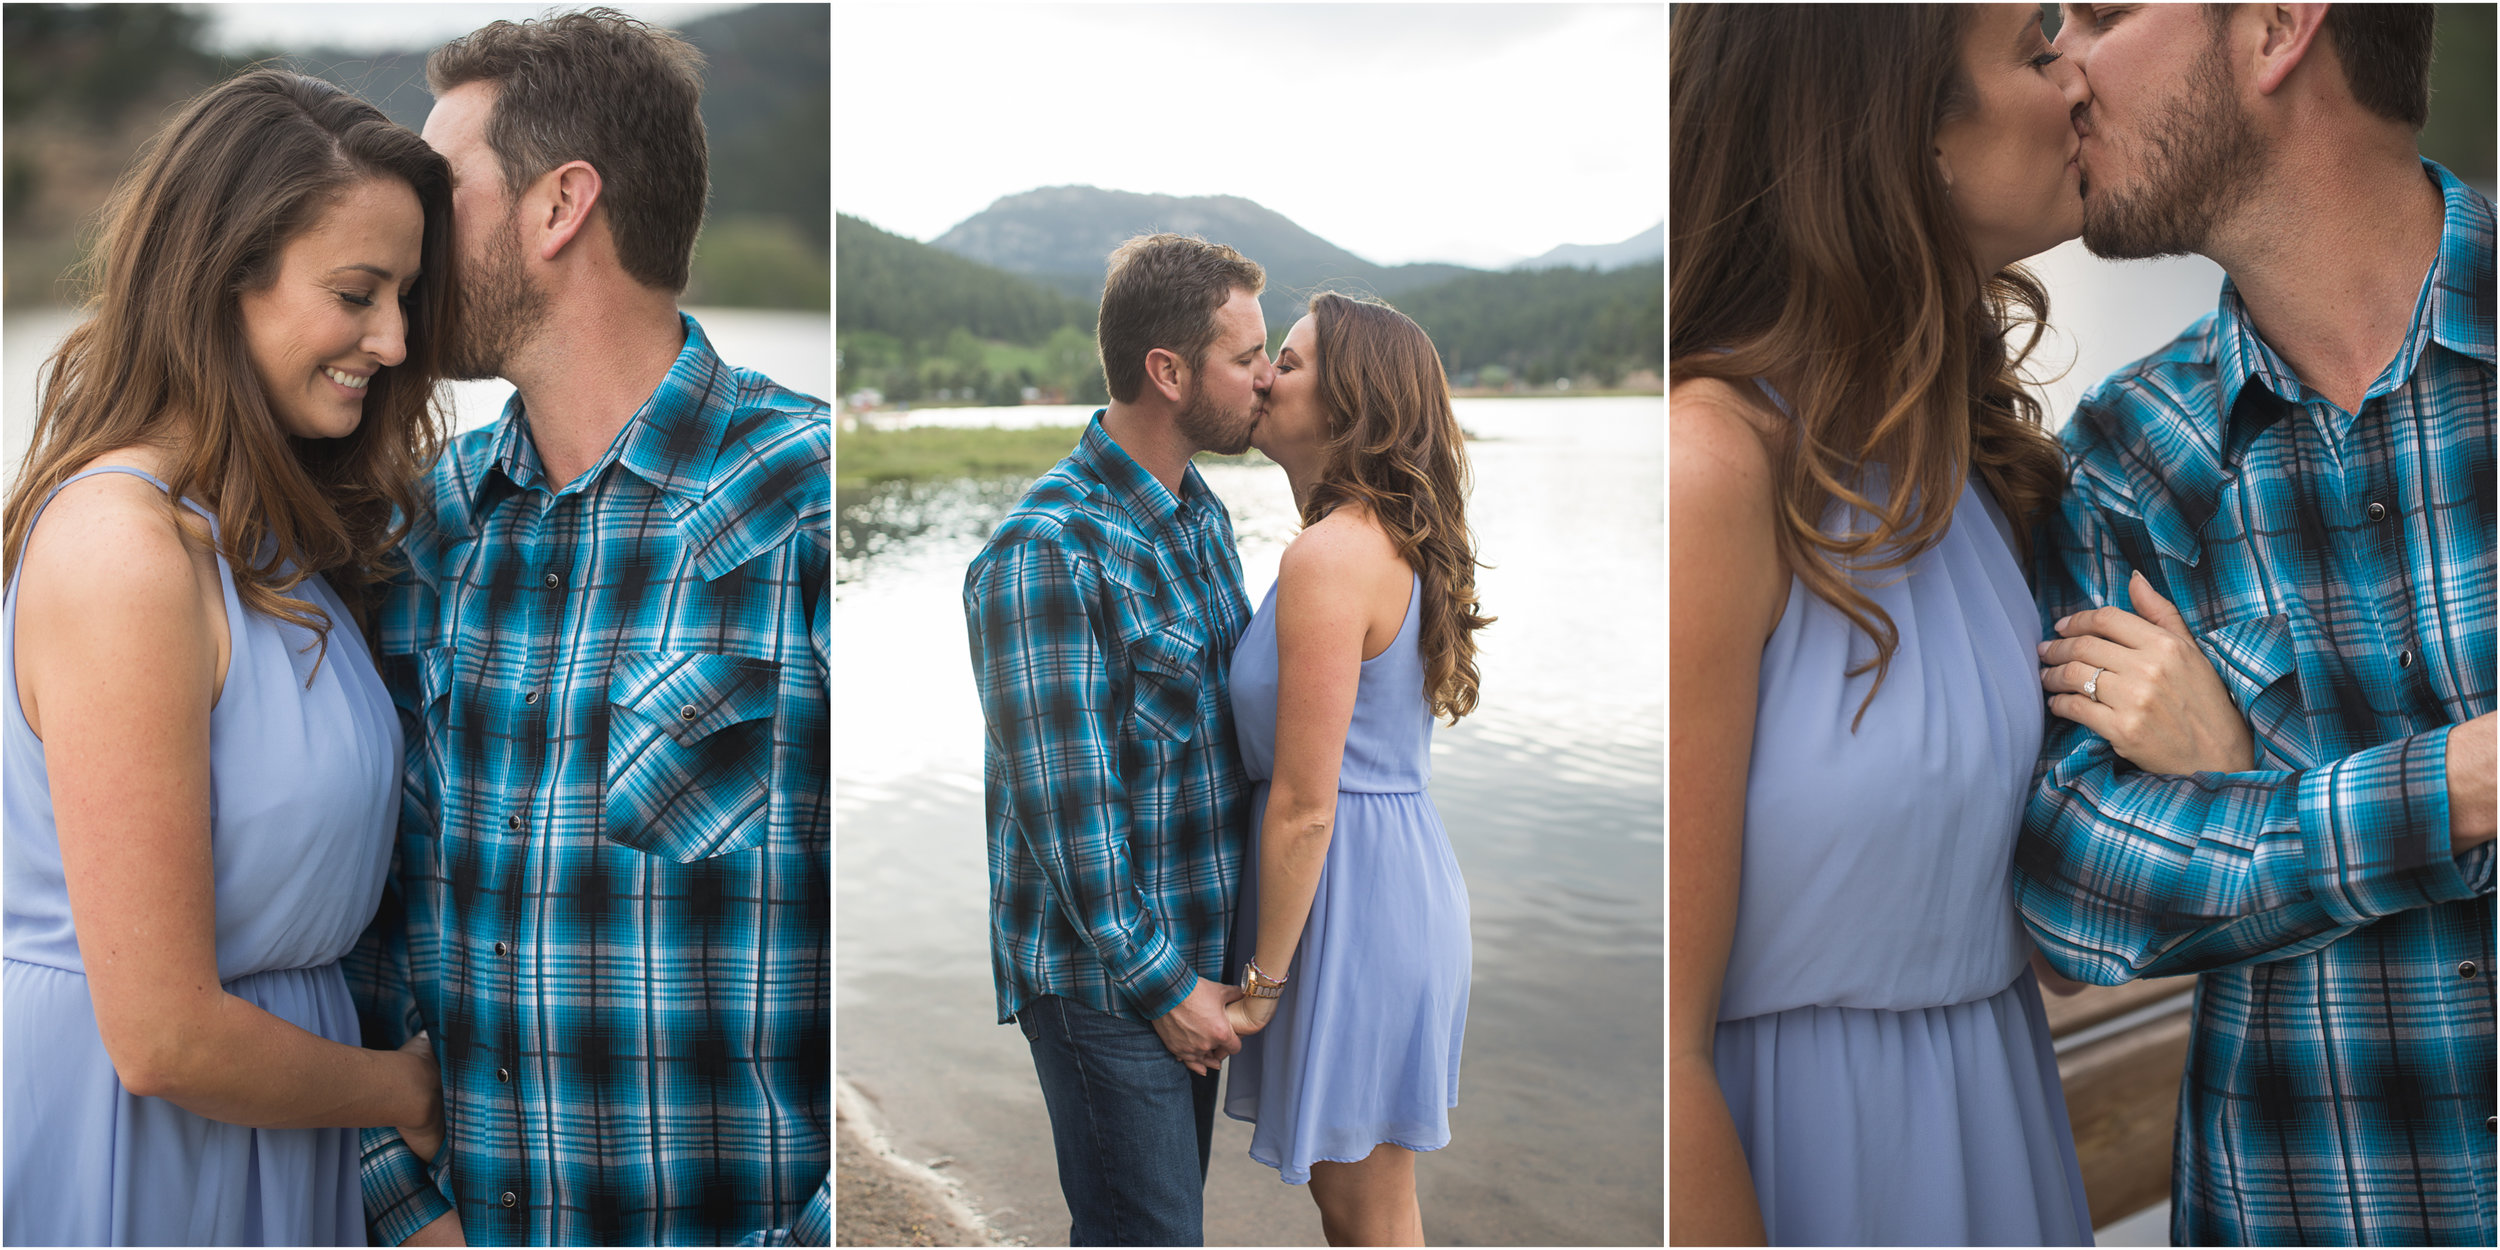 Heather & Derek Mountain Engagement Session 6.jpg